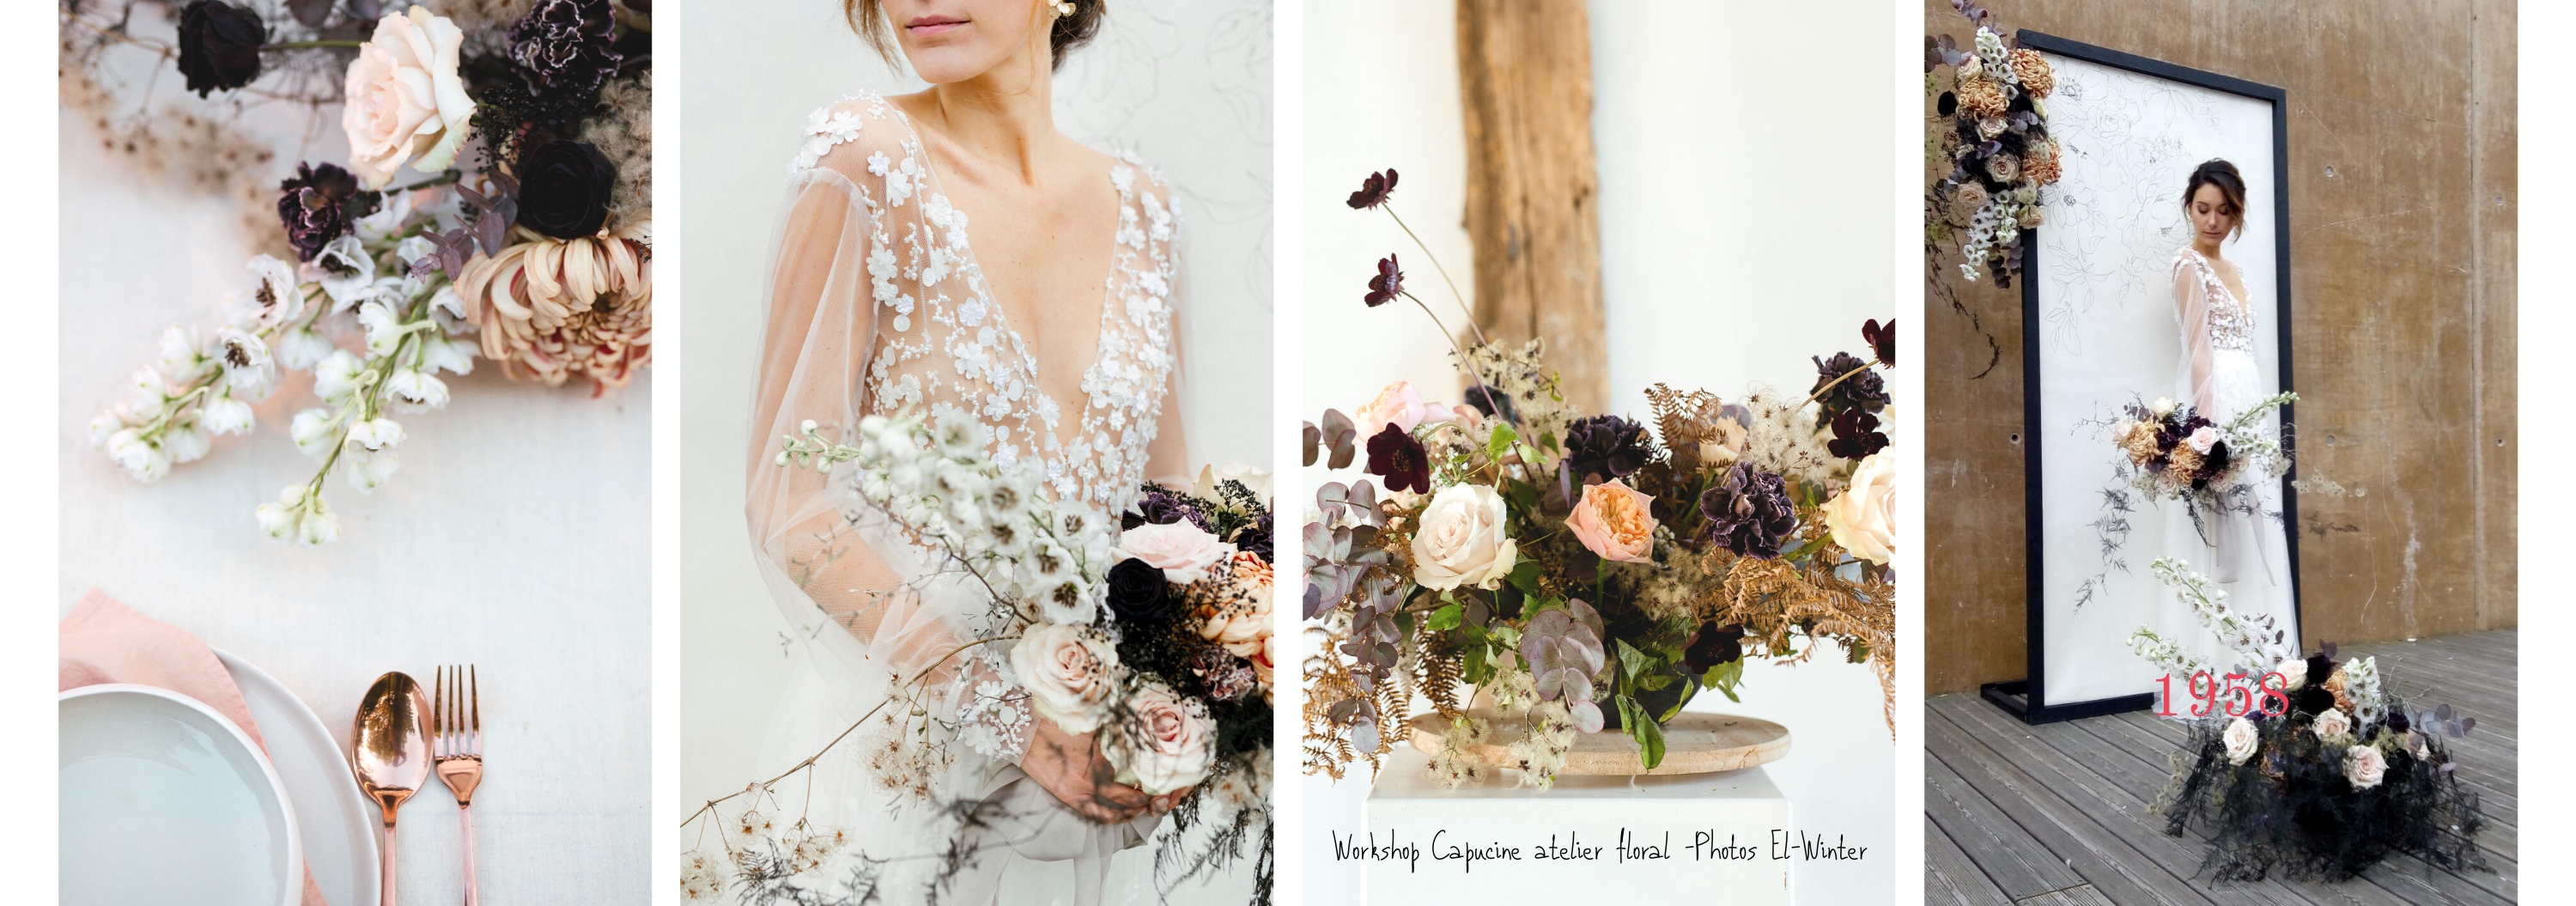 Workshop Capucine atelier floral photo El-Winter-christelle_clz